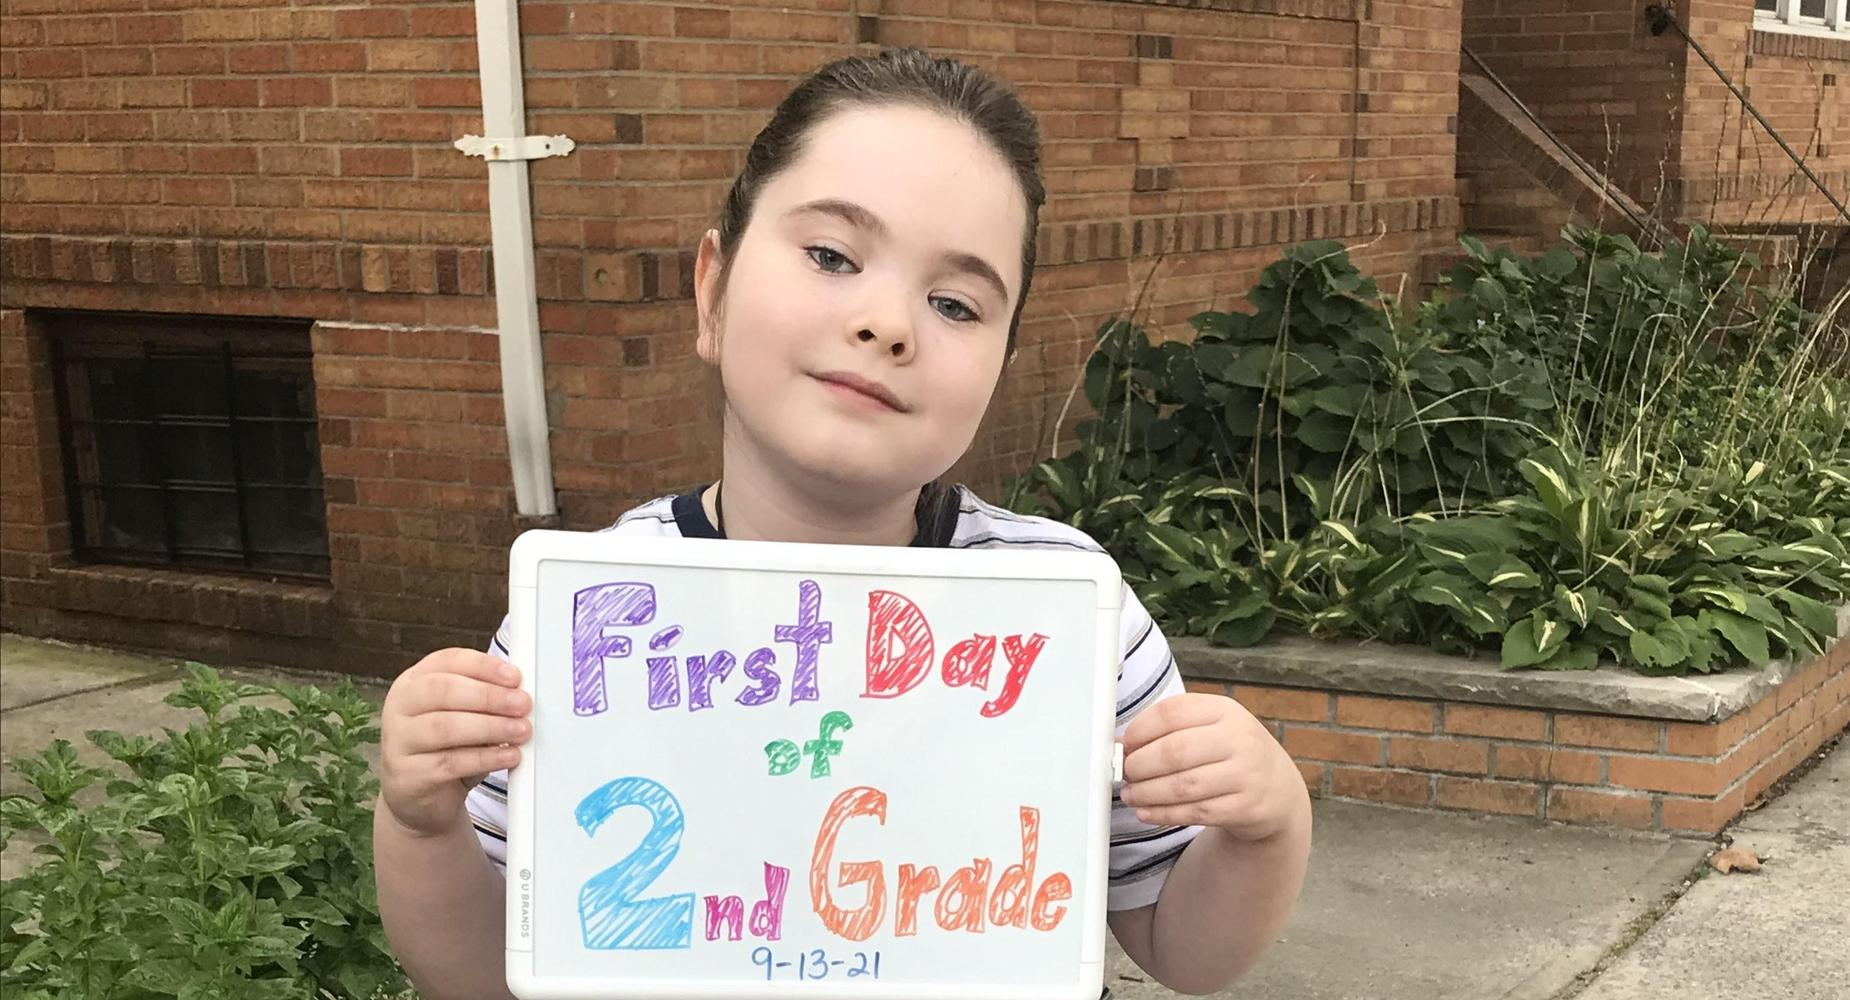 boy holding first day of second grade sign